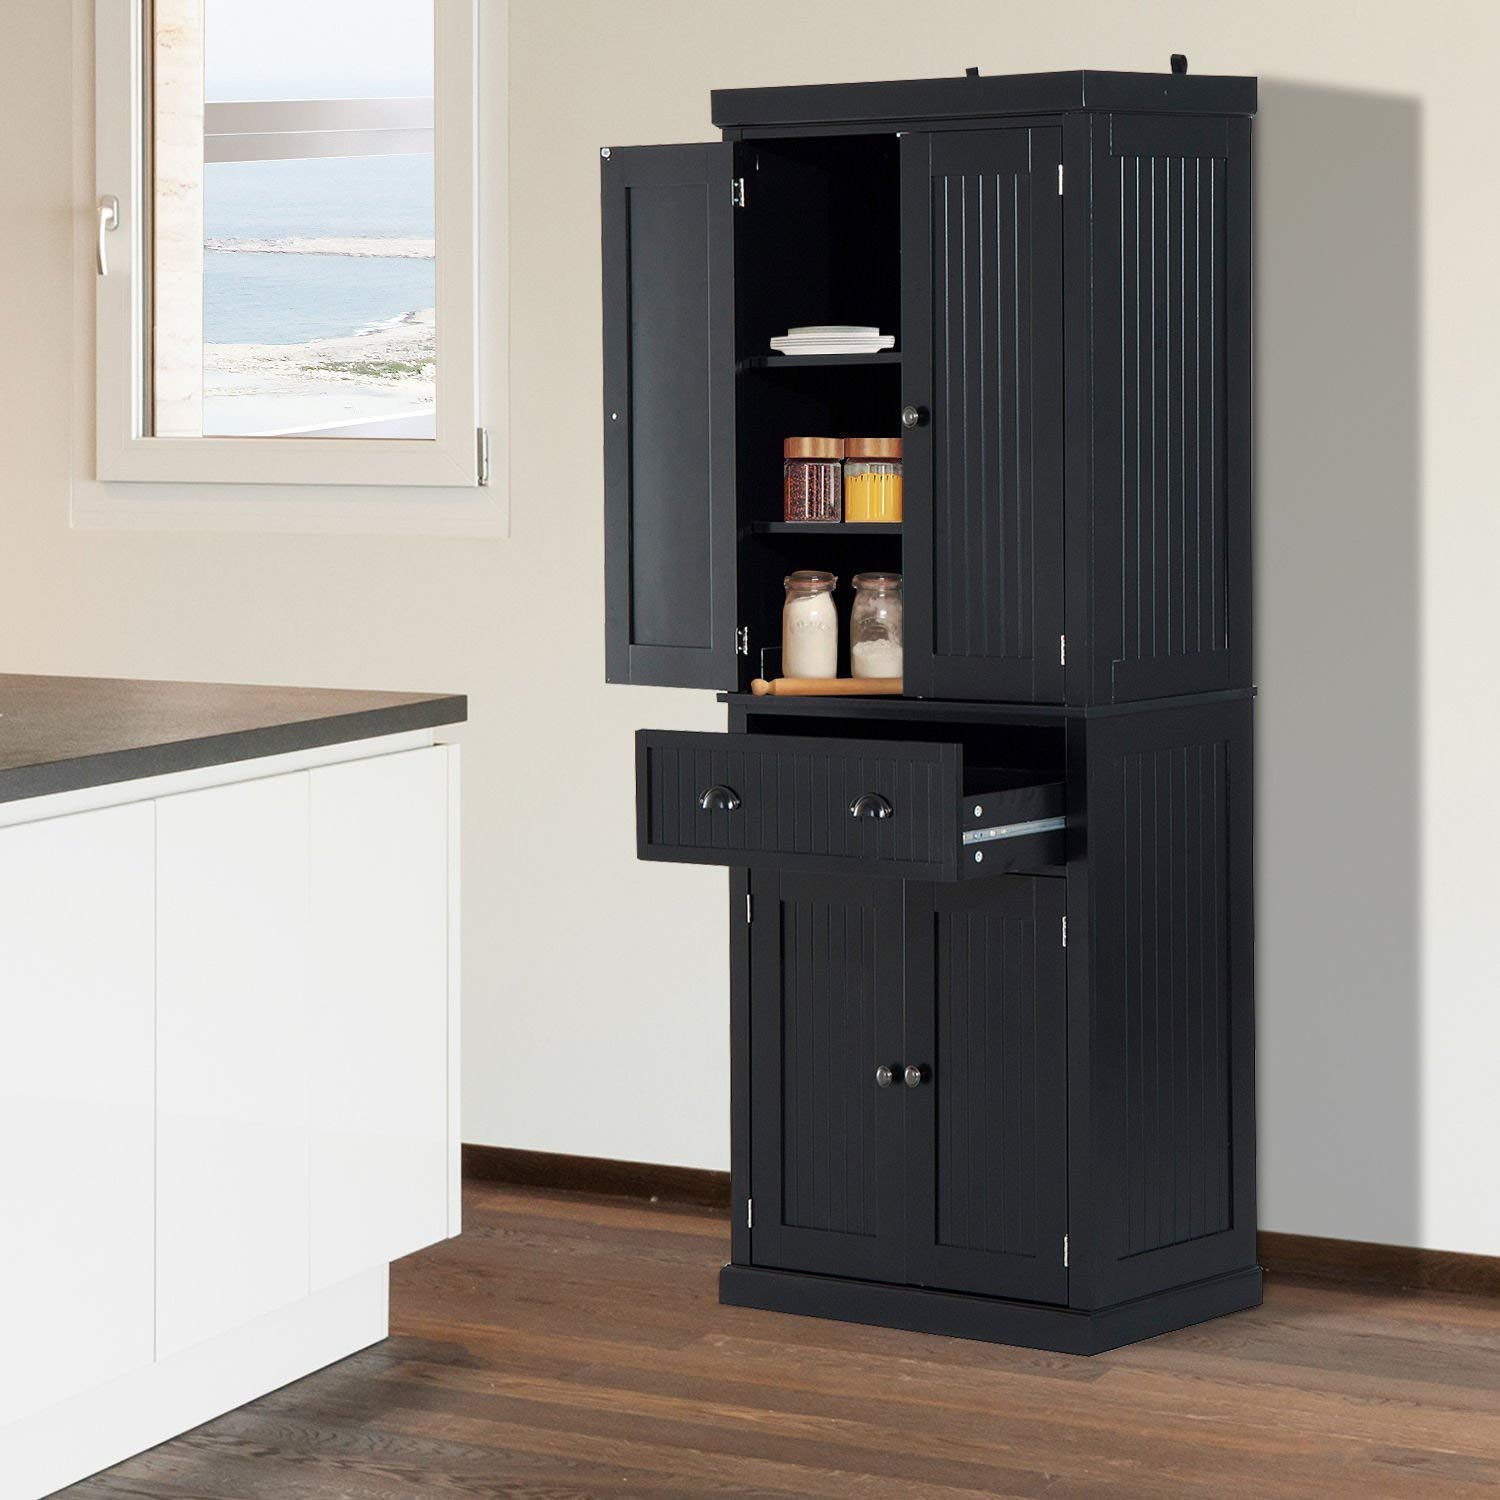 Festnight Tall Kitchen Pantry Storage Cabinet, Traditional Standing Kitchen Pantry Cupboard Cabinet Black 72'' by Festnight